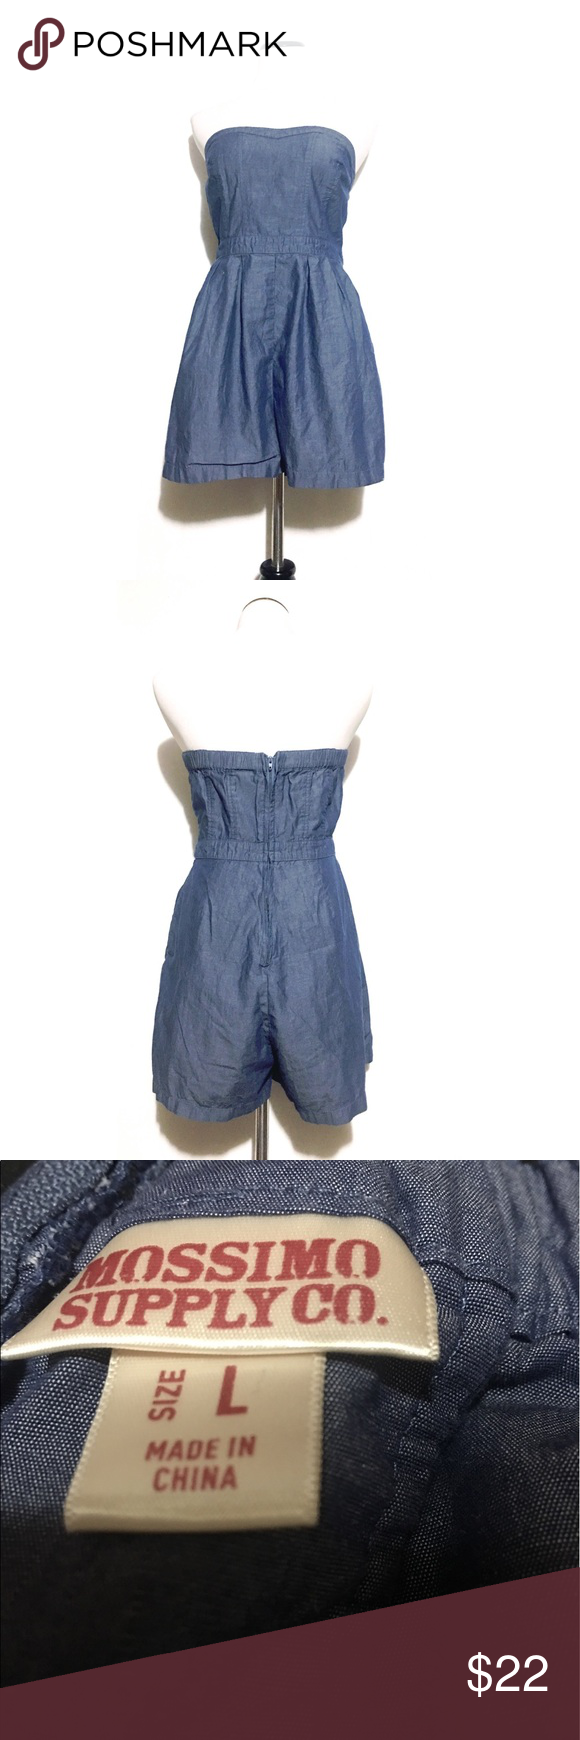 147621da525 Mossimo supply jean romper EUC! Size large!! Mossimo Supply Co Pants  Jumpsuits   Rompers